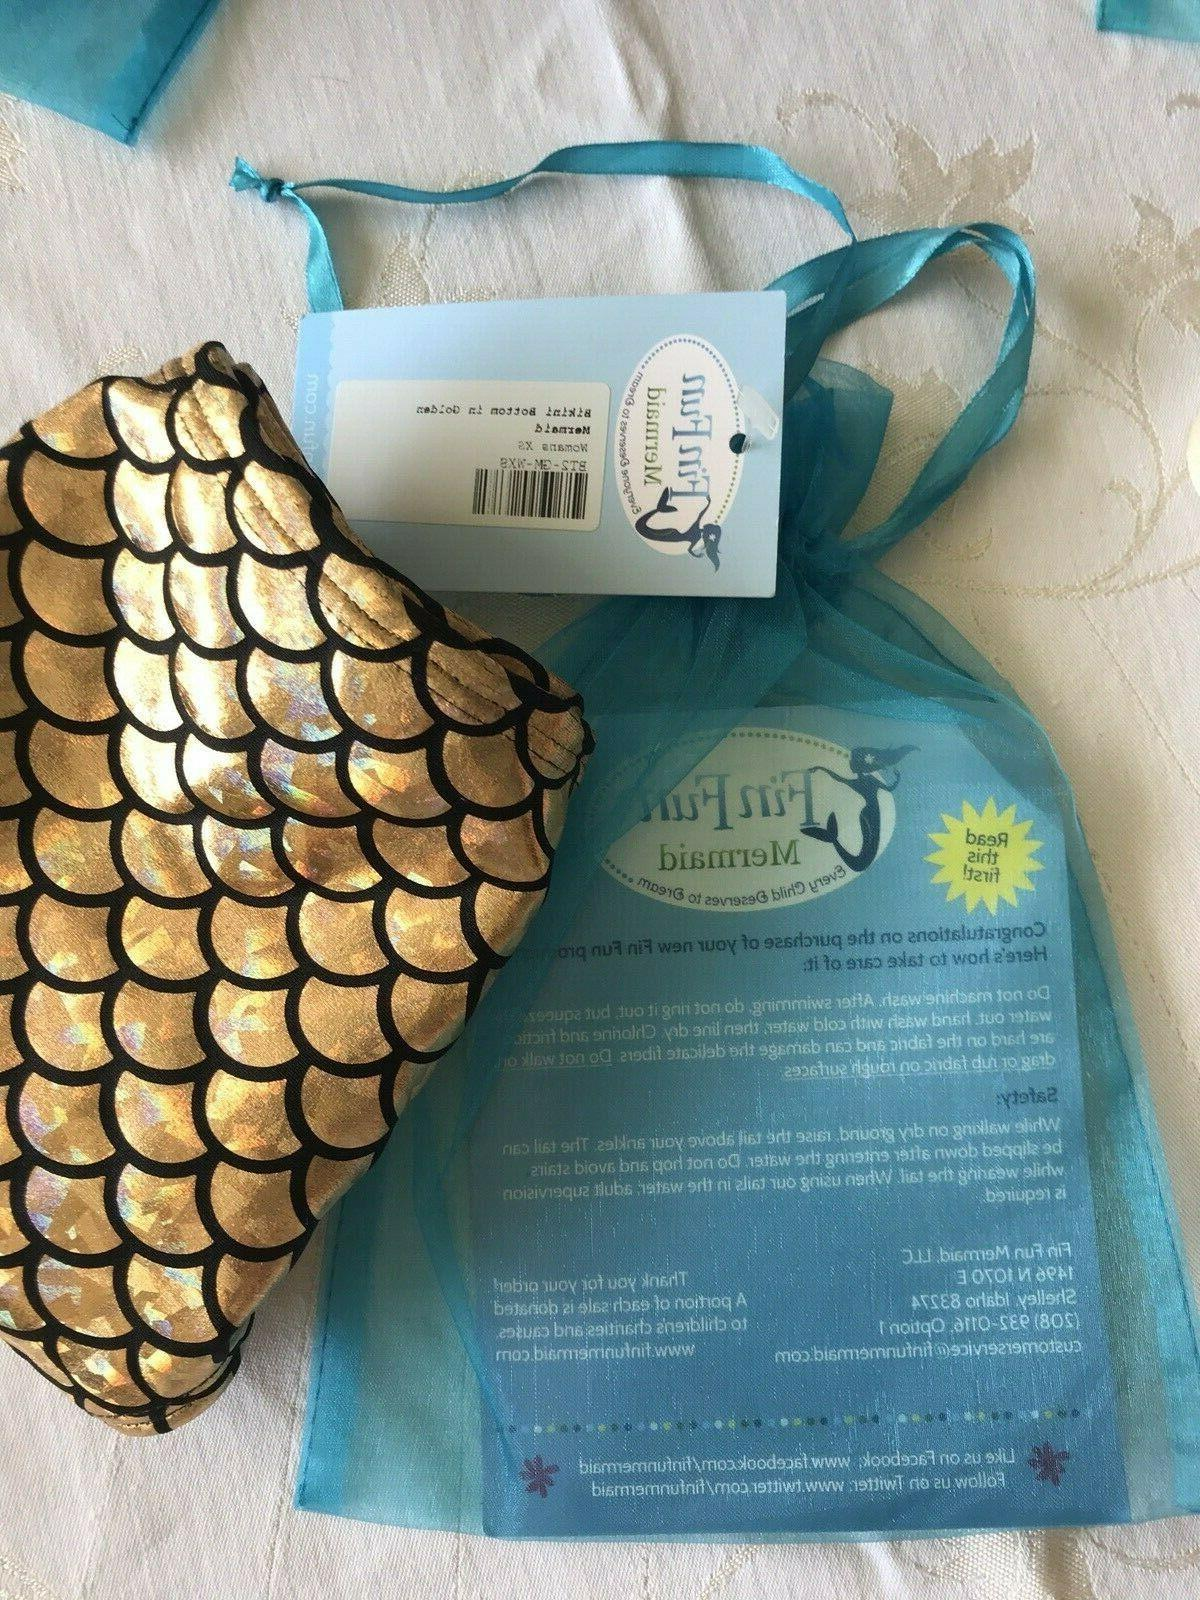 NWT Fun Golden Mermaid Suit RETIRED, Womens